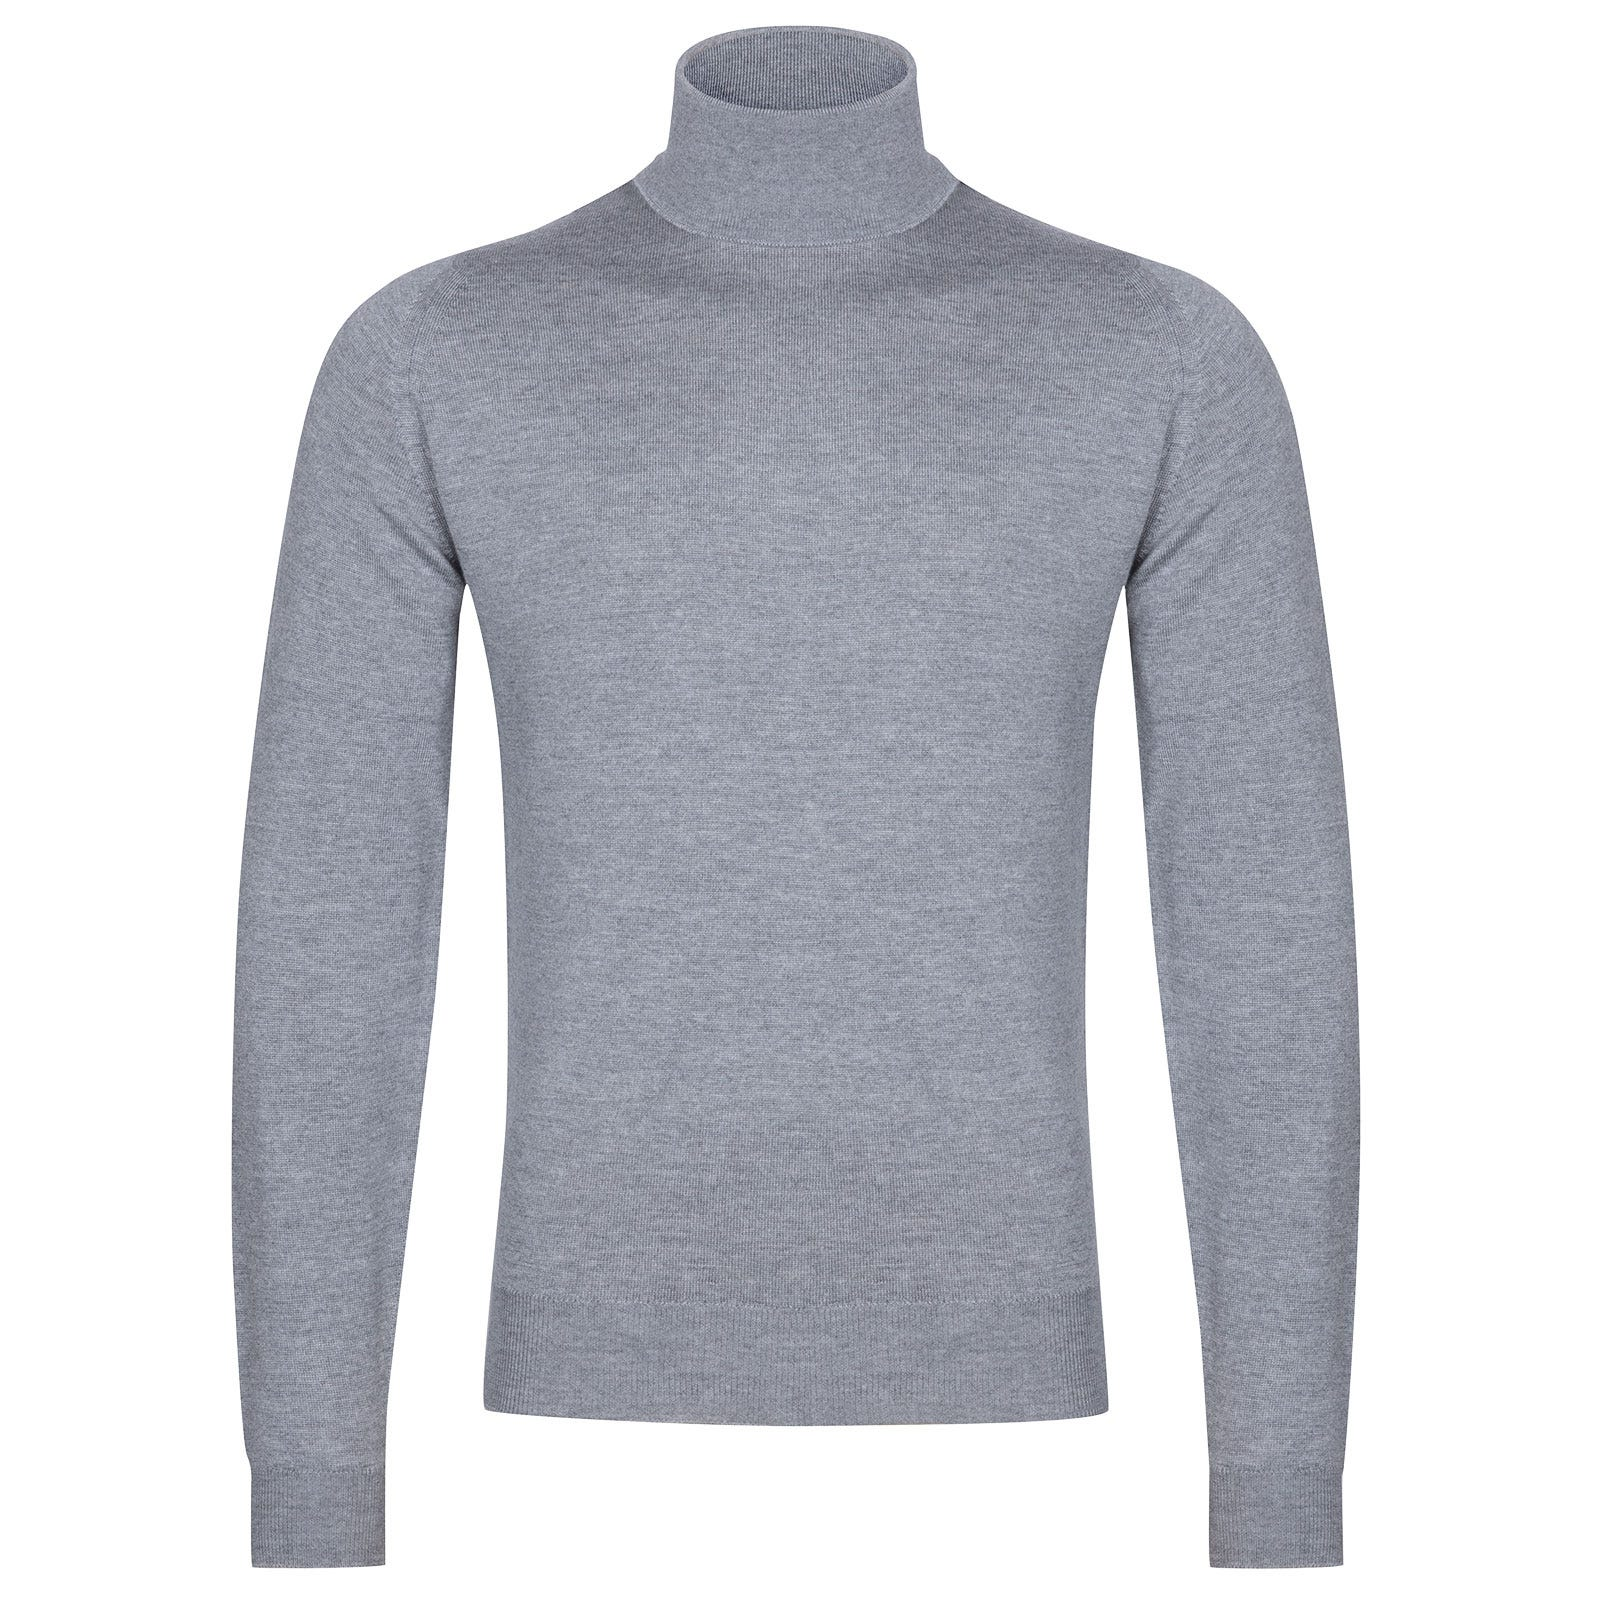 John Smedley Connell Merino Wool Pullover in Silver-S